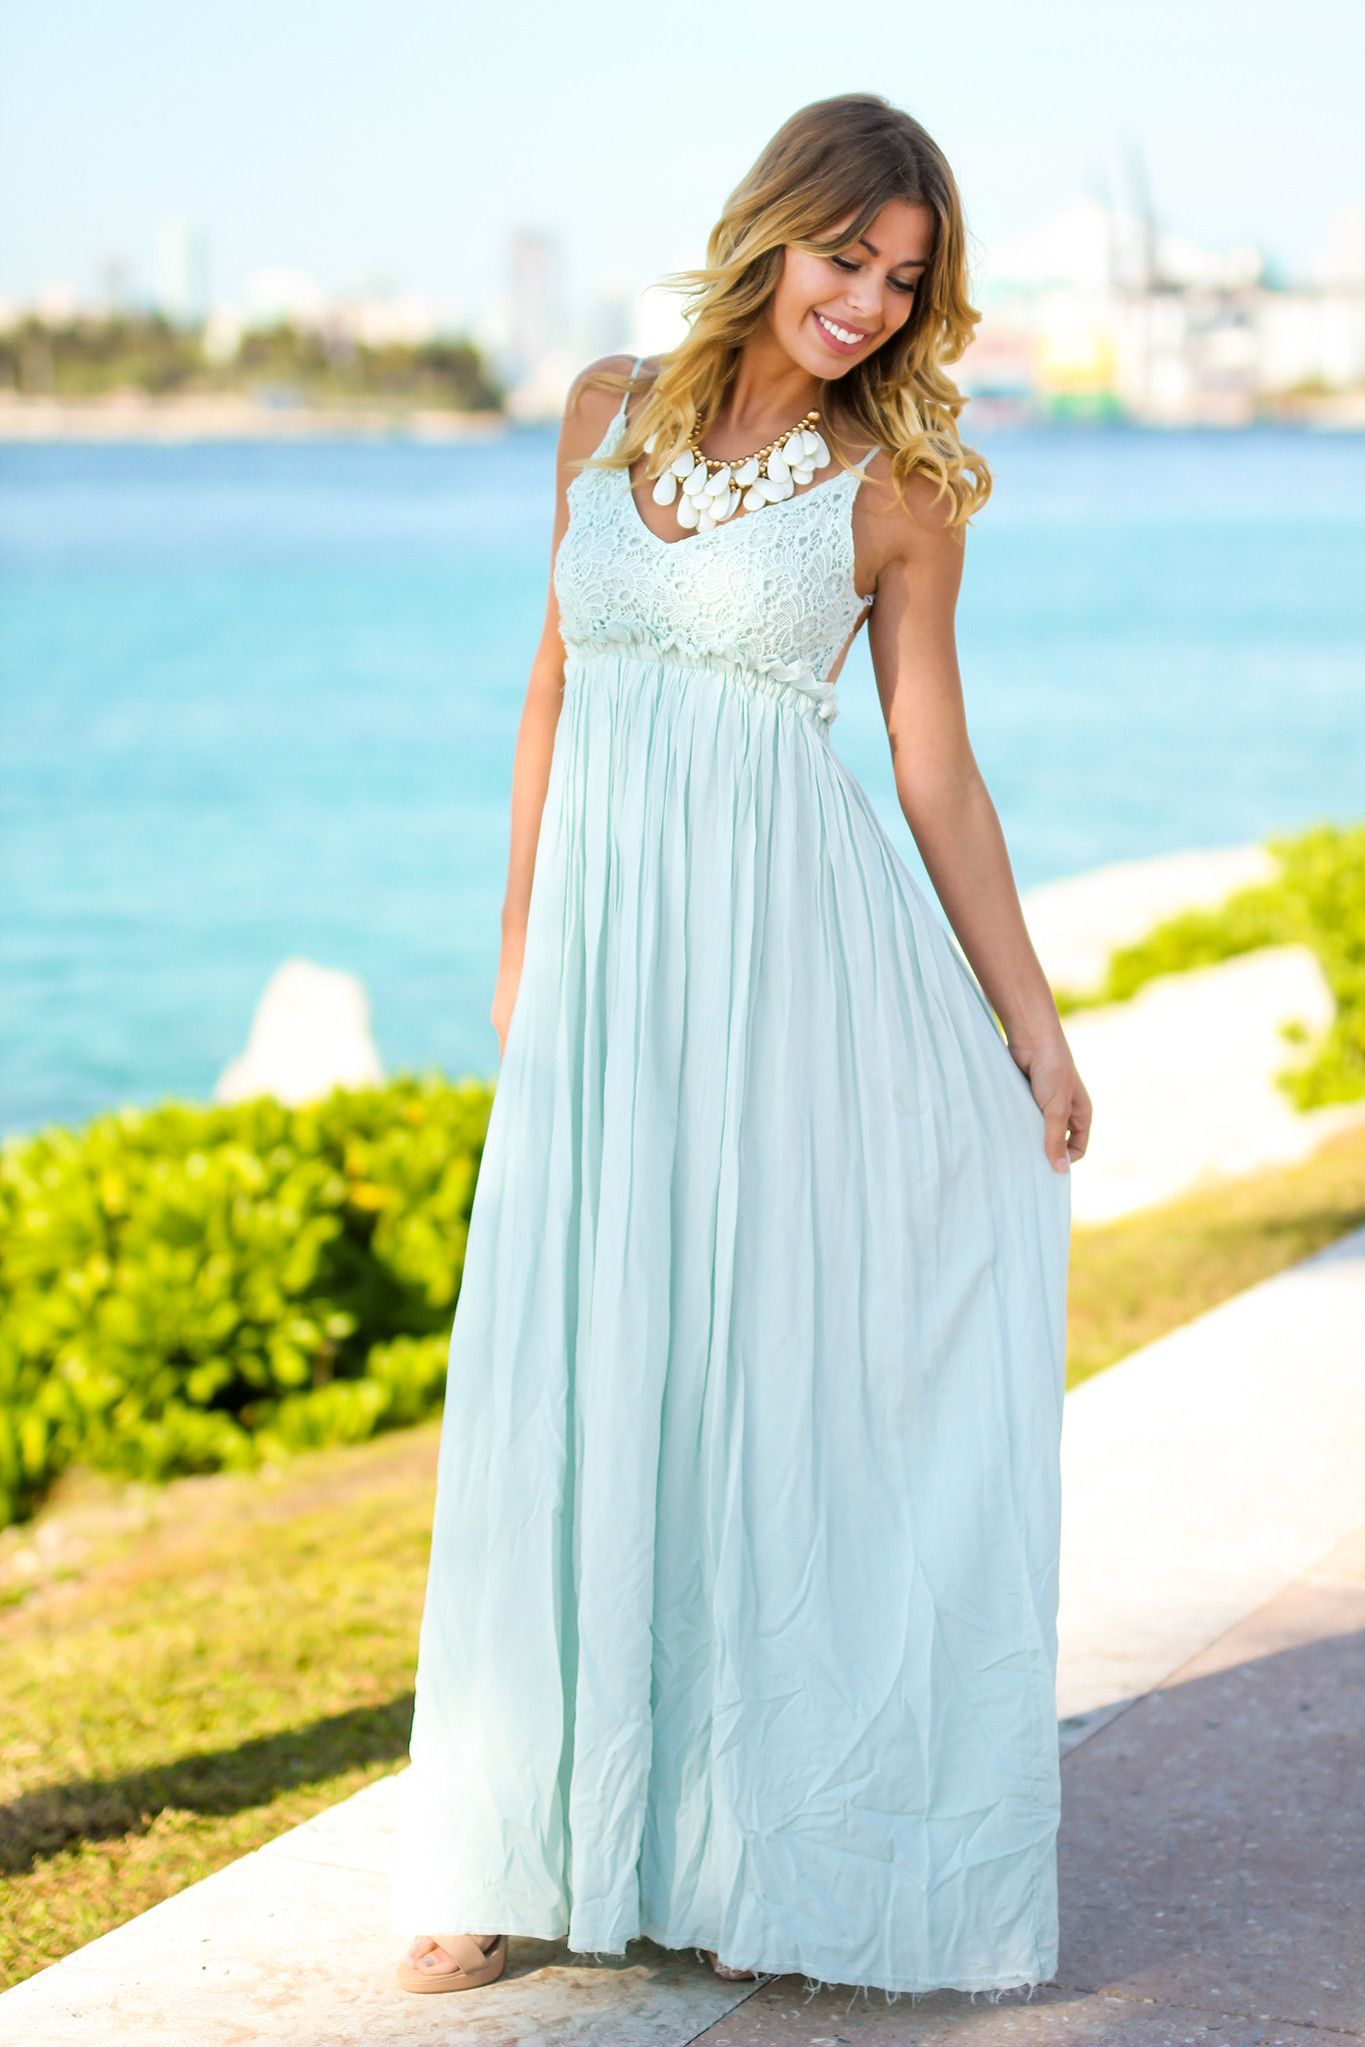 ef64c7f28aa Seafoam Lace Maxi Dress with Open Back and Frayed Hem in 2019 ...